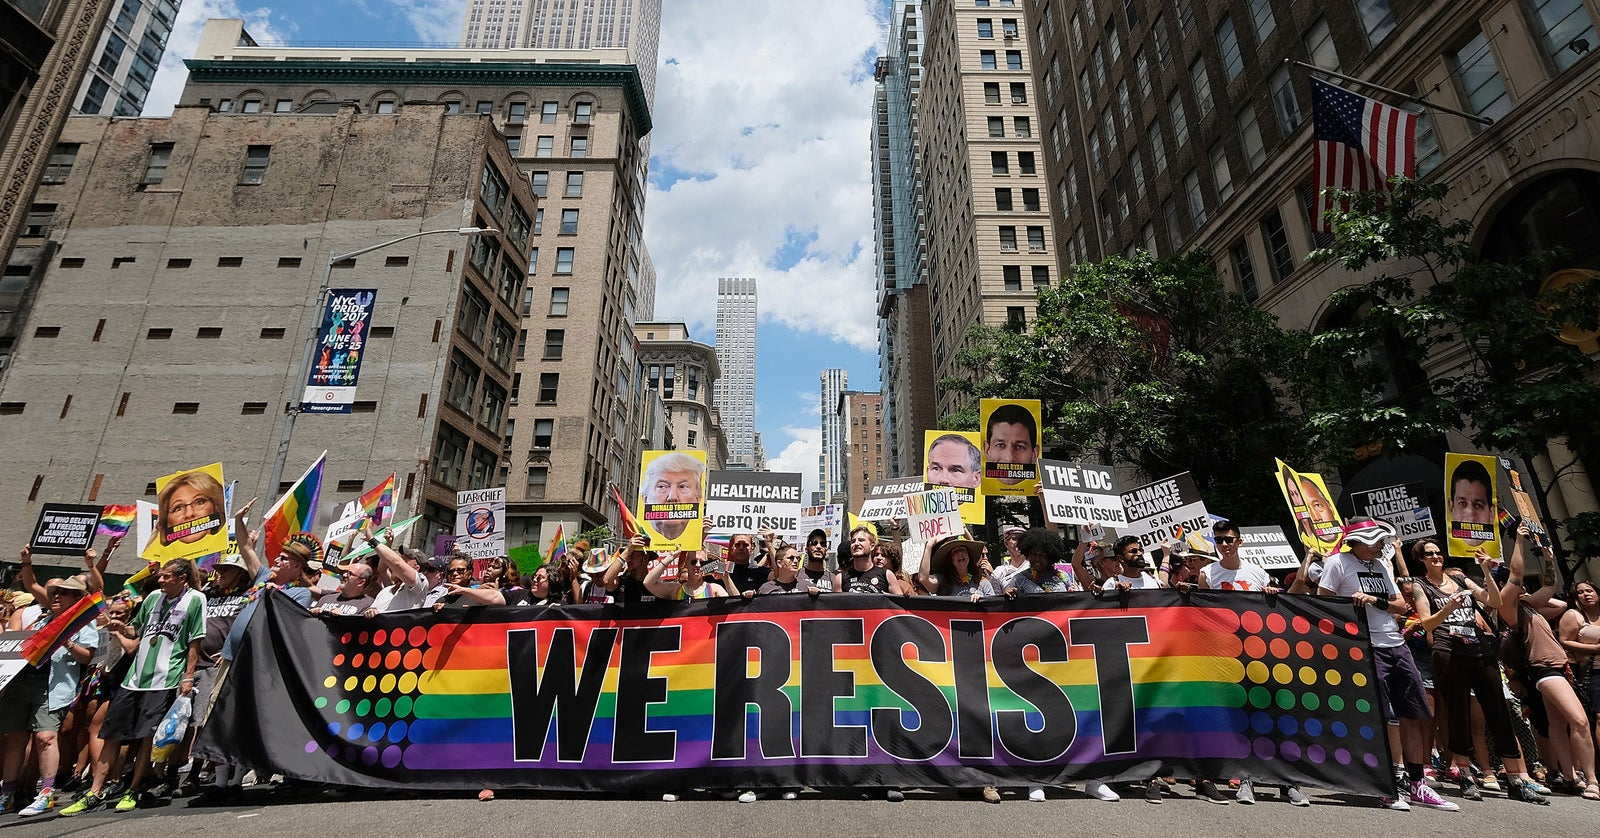 People Are Pissed At The New Rules For New York Pride